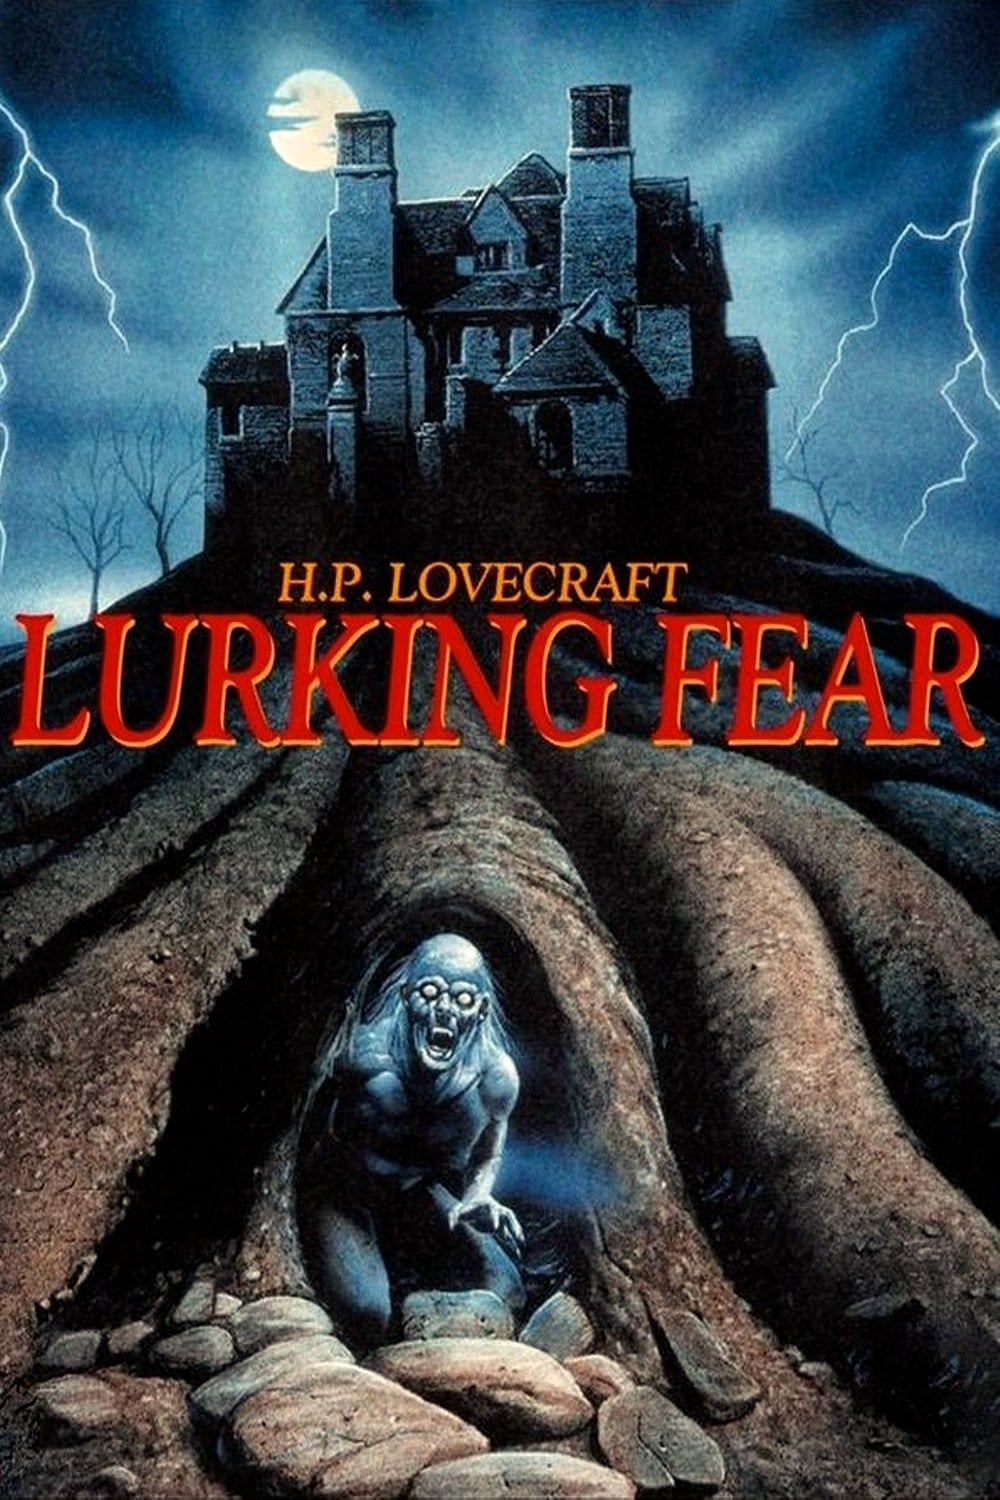 Lurking Fear 1994 Movie Poster Night Of The Demons Guys Be